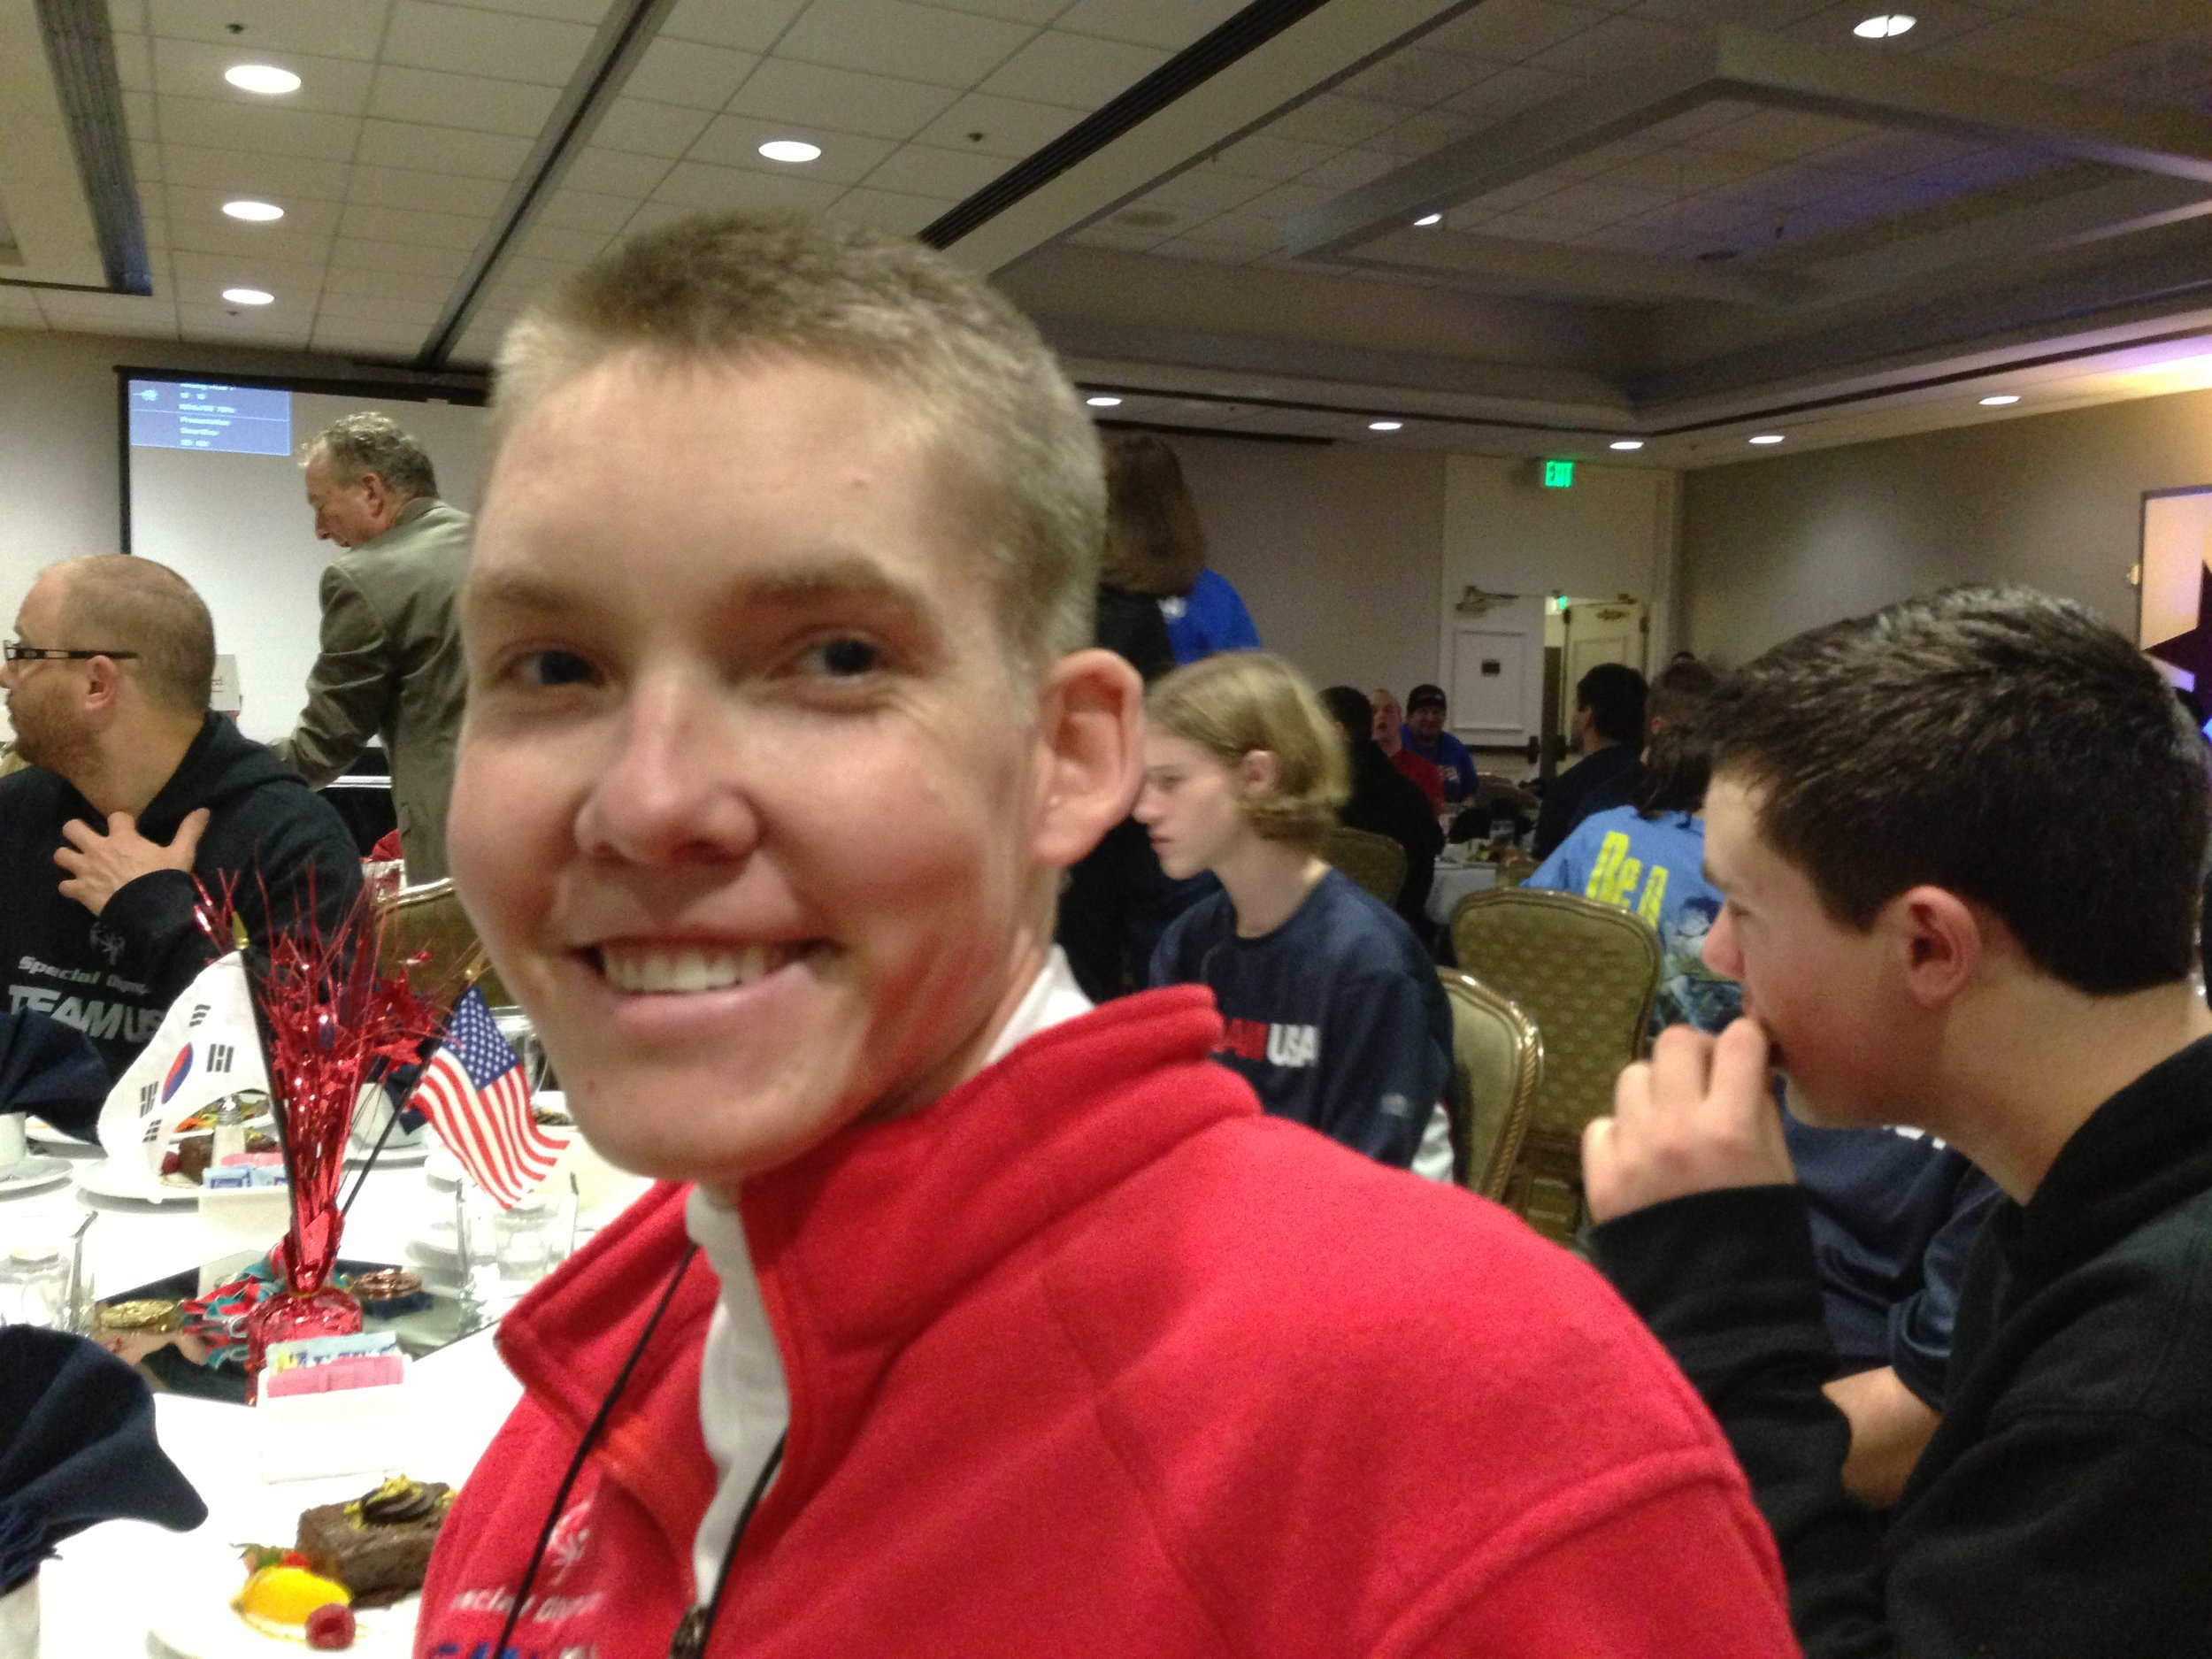 Chase Lodder, 25, of Salt Lake City, Special Olympics snowboarder